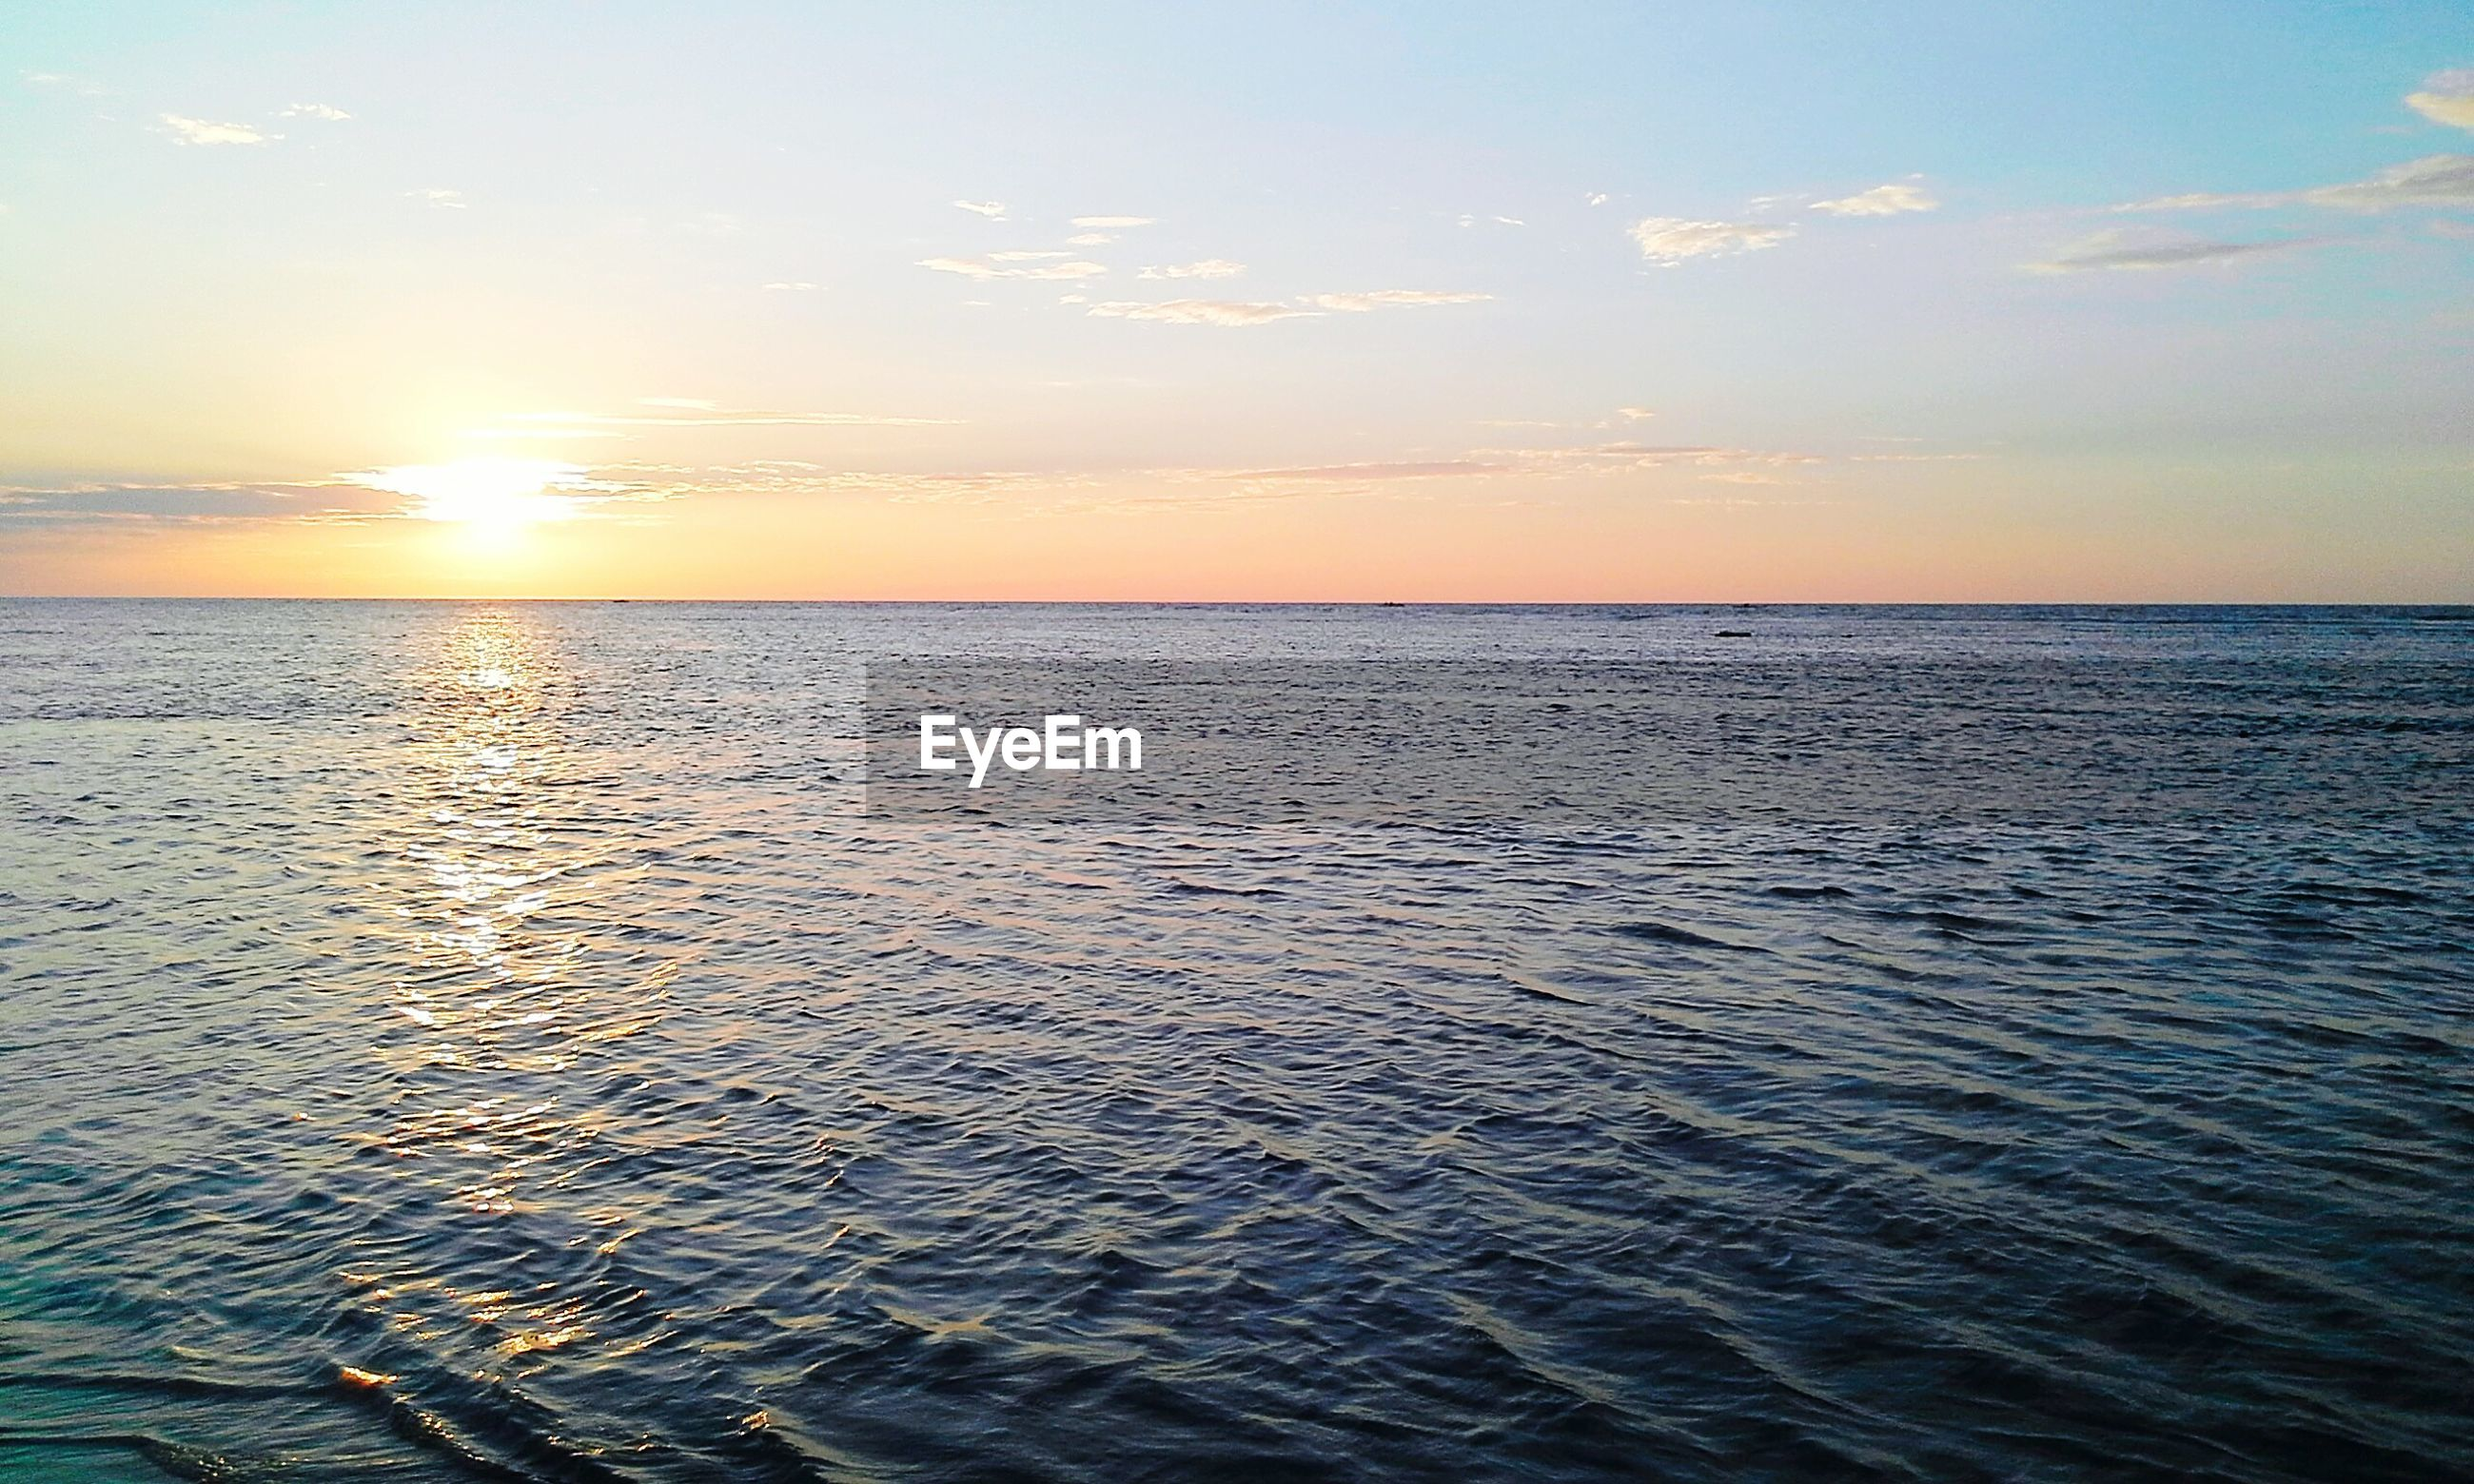 sea, water, horizon over water, sunset, tranquil scene, scenics, beauty in nature, sun, tranquility, sky, rippled, idyllic, nature, reflection, waterfront, seascape, orange color, sunlight, beach, cloud - sky